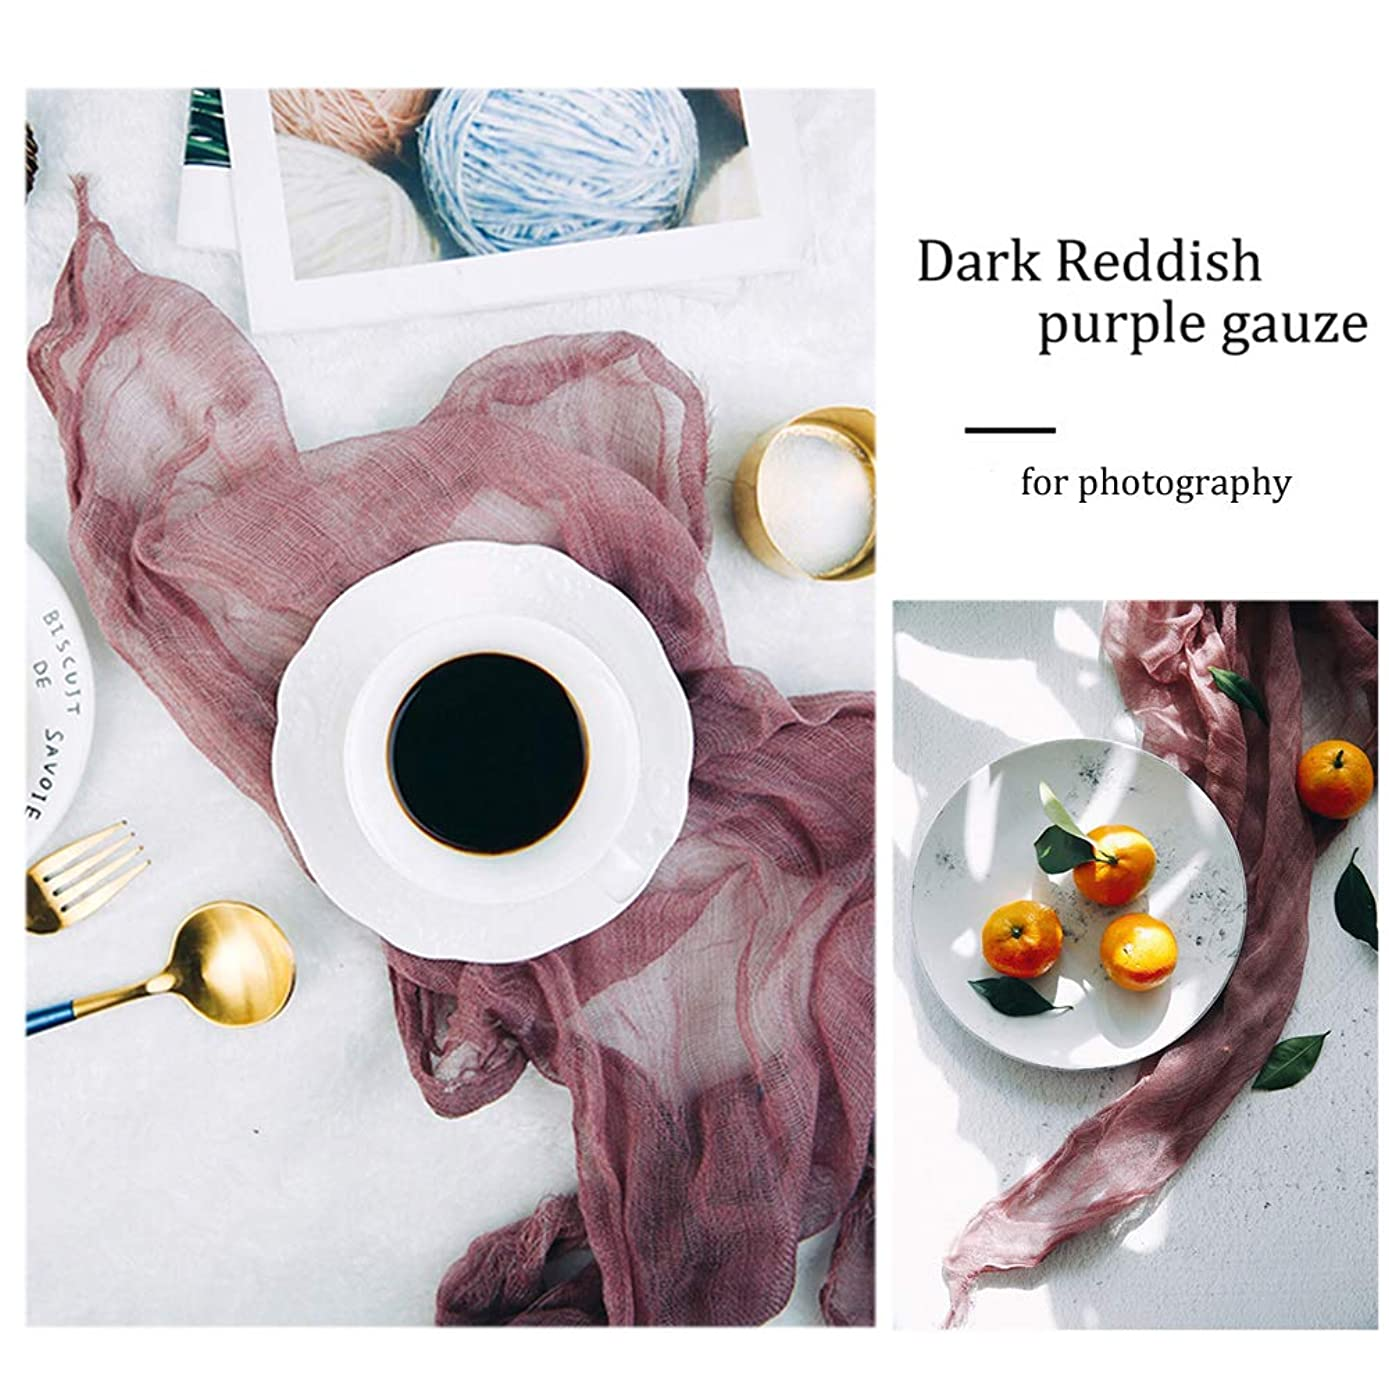 Gauze Napkin 23x35 Inch (60 x 90cm) Cheesecloth Photography Props for Tabletop Food Product Flat Lay Backdrop Paper Photo Studio Background (Reddish Purple)